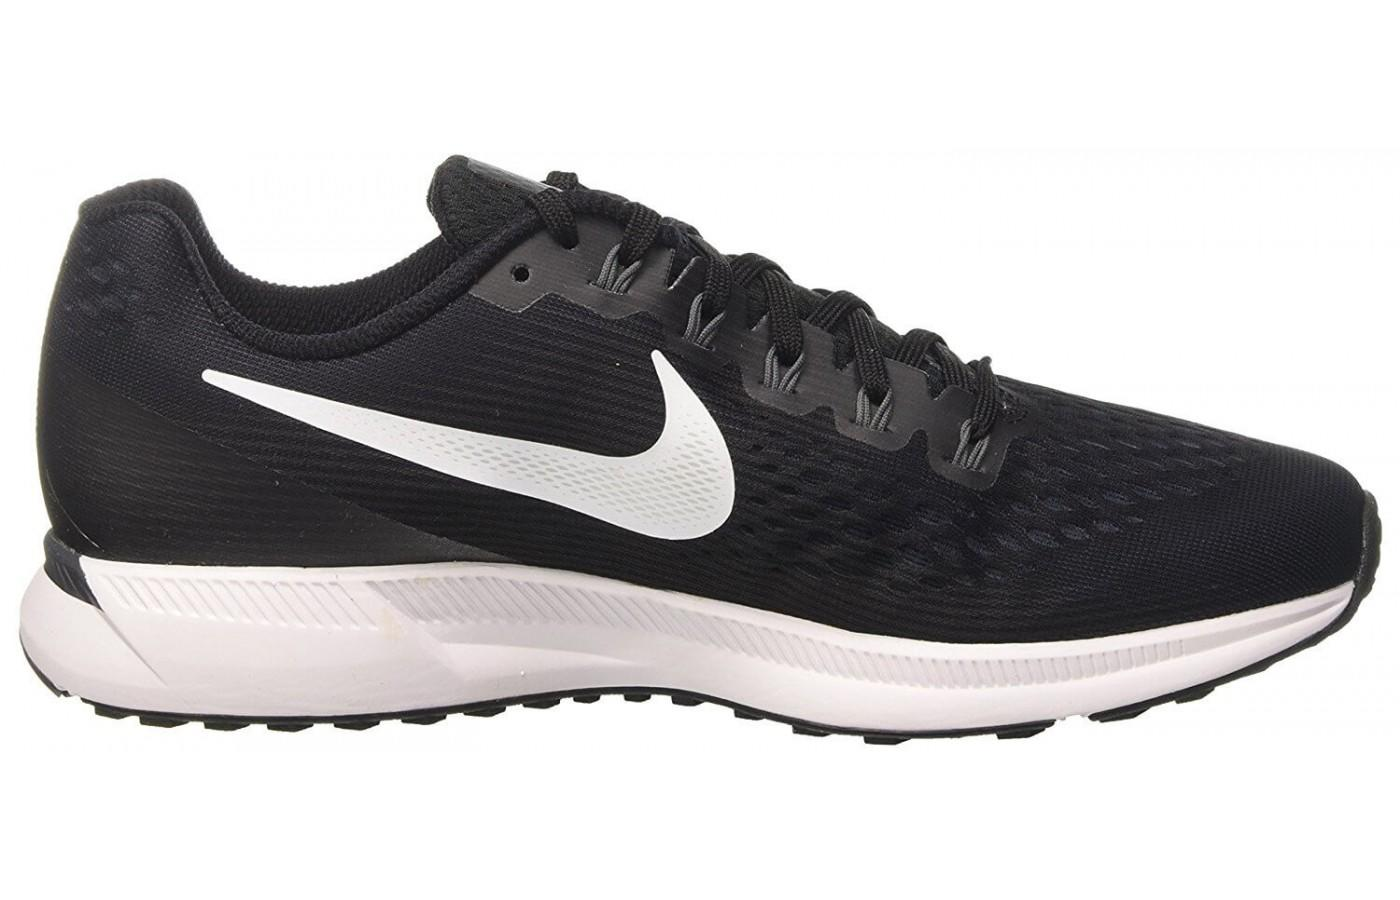 Nike Air Zoom Pegasus 34 - To Buy or Not in Mar 2019  4c8307c714dfa